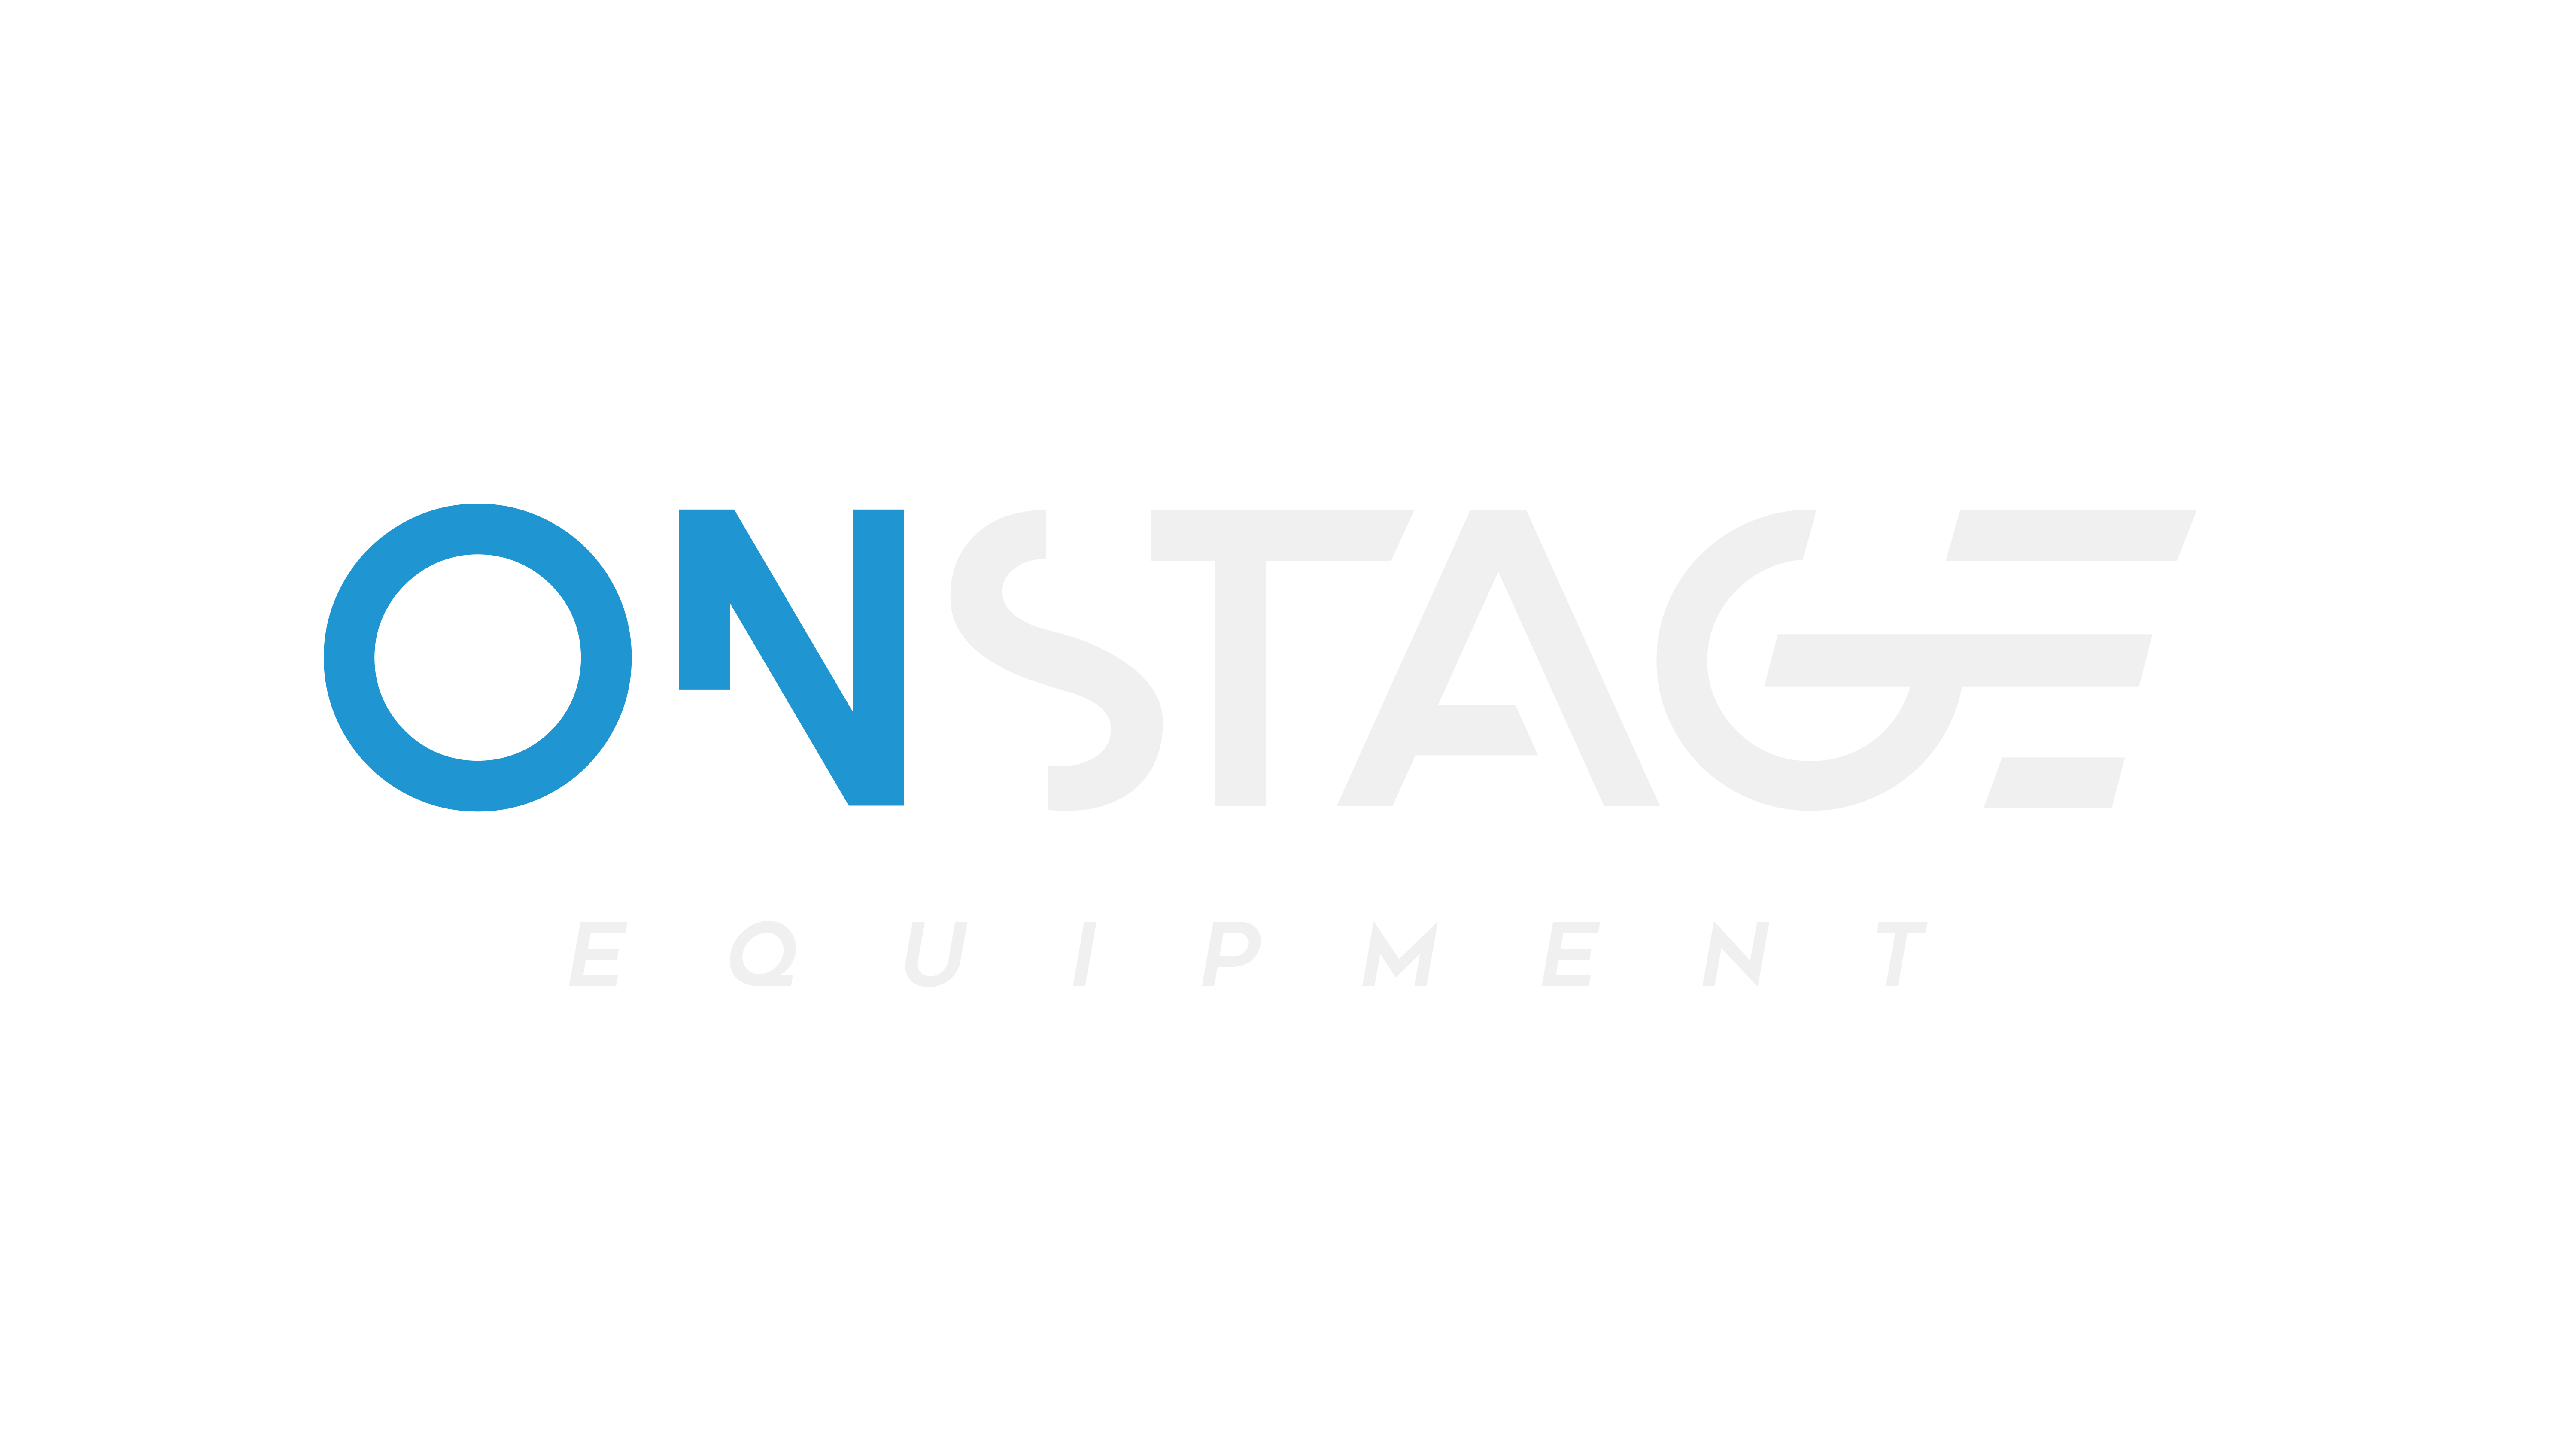 On Stage Equipment